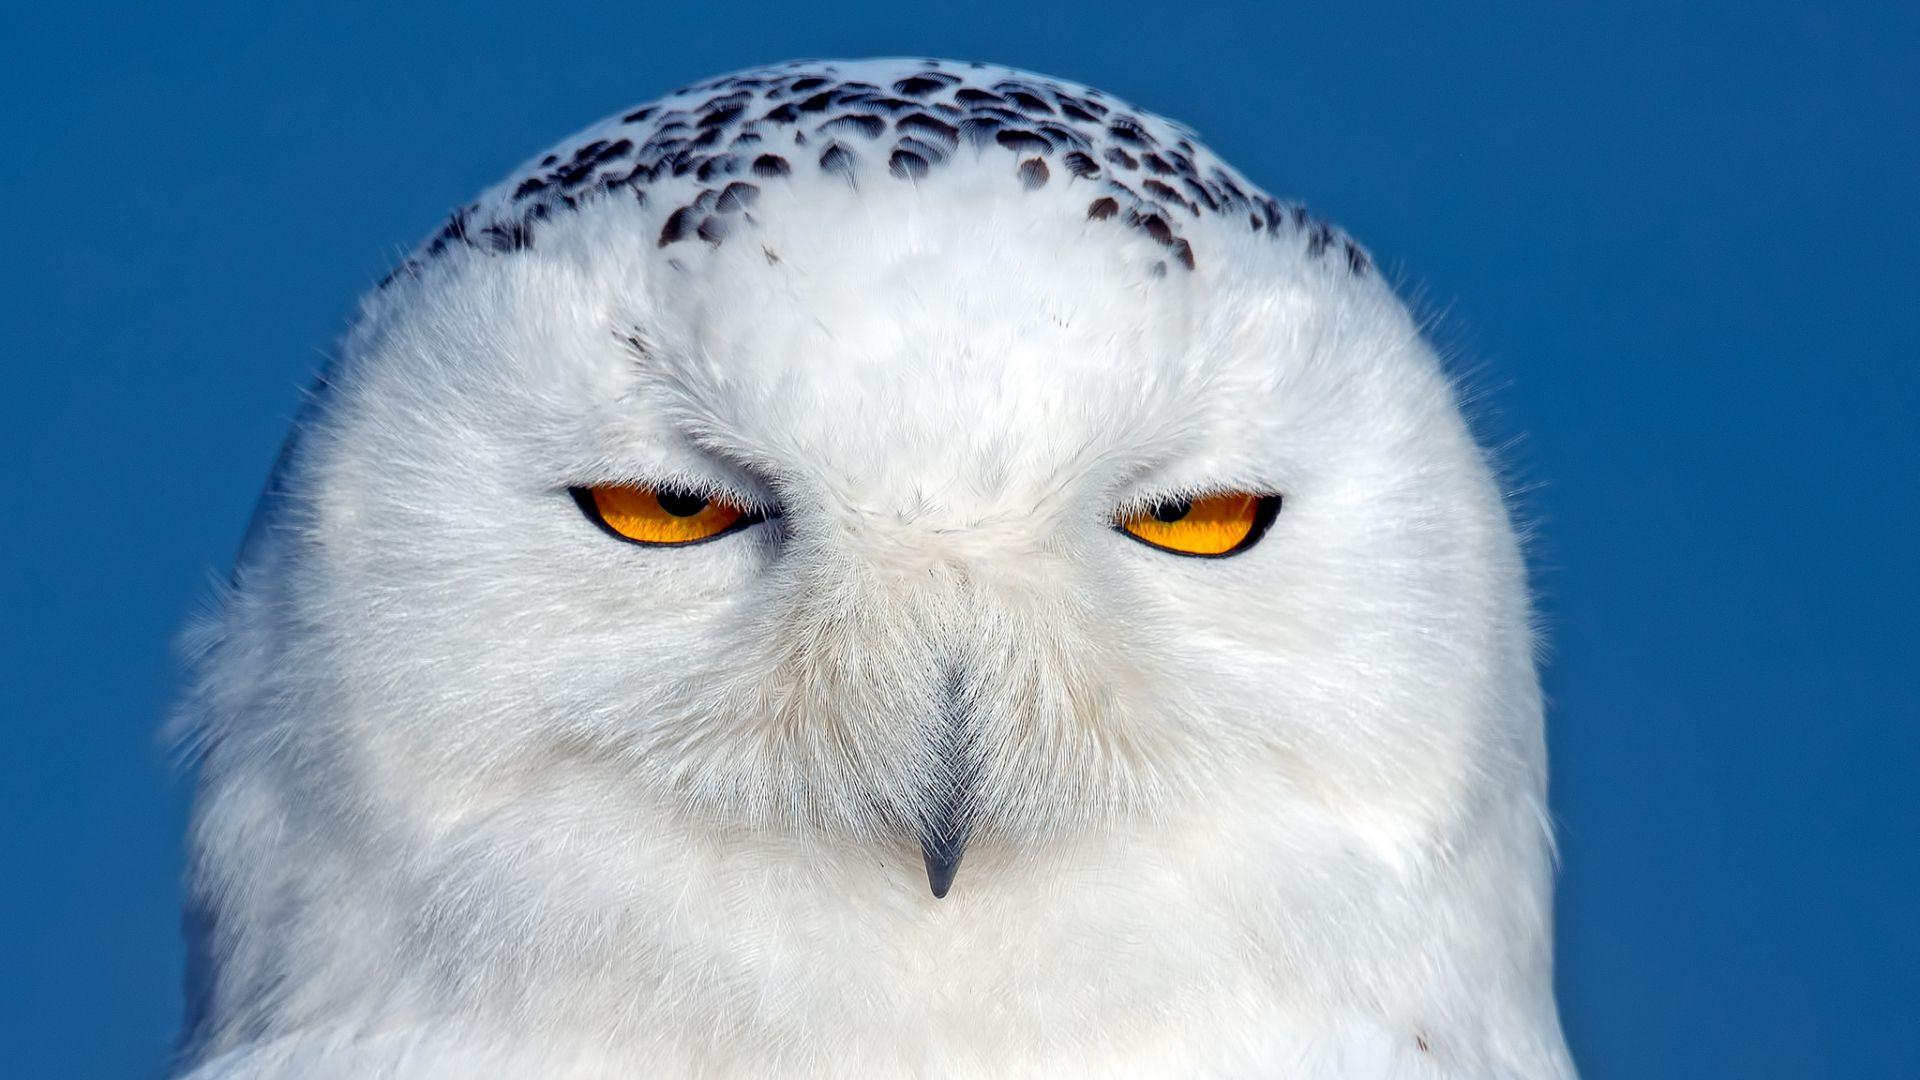 Download Wallpaper 1920x1080 owl, snowy owl, bird, predator, eyes ...